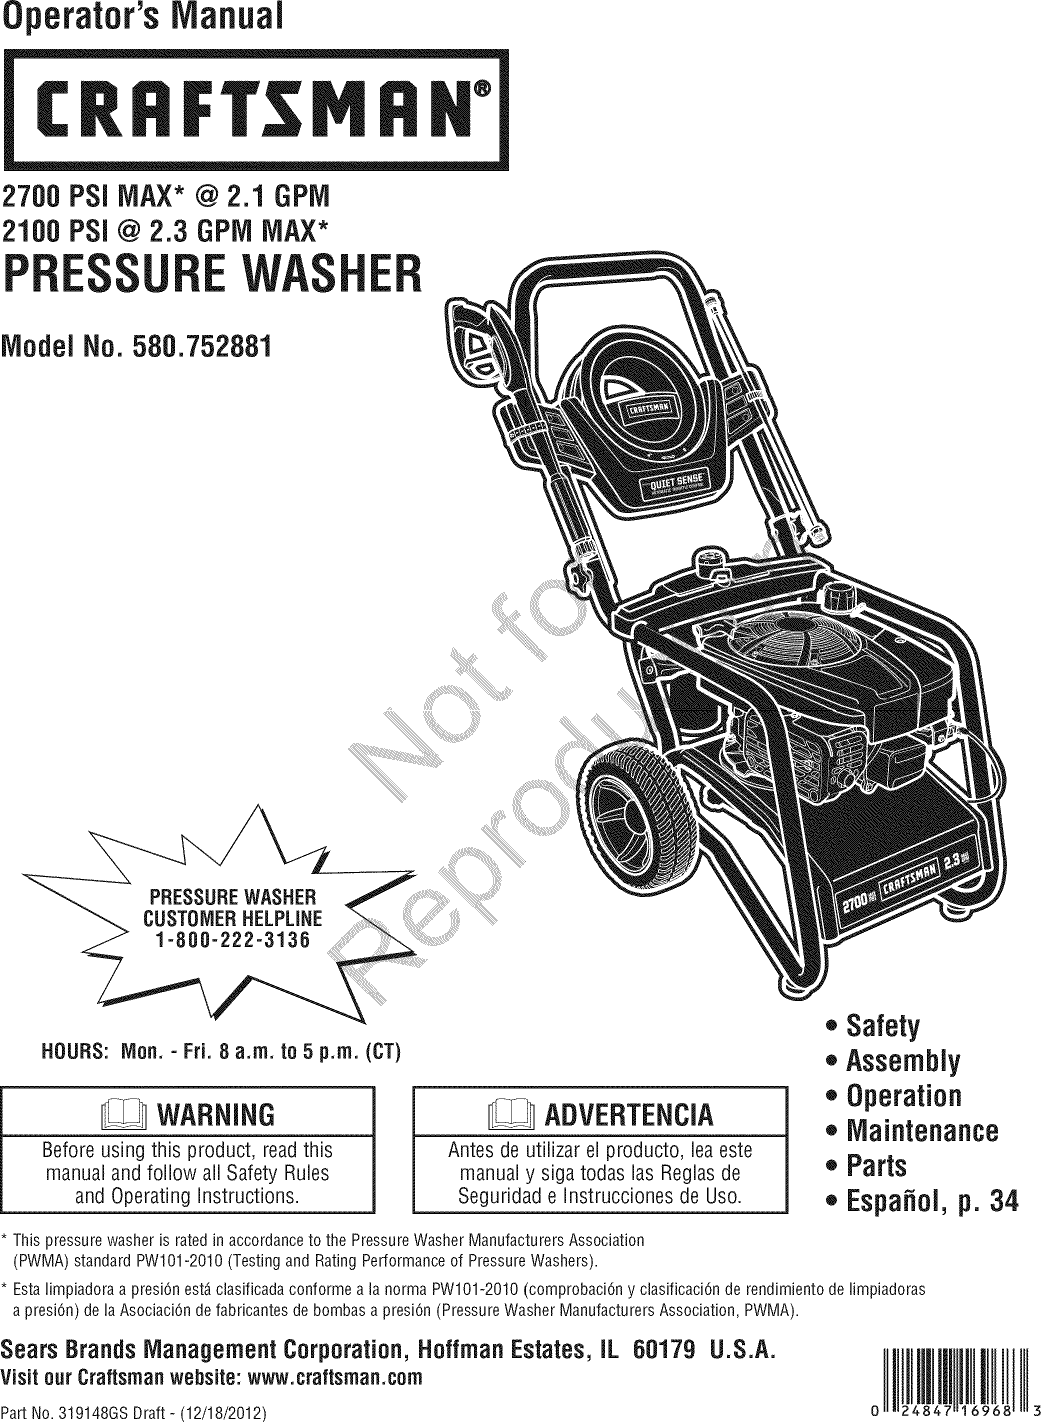 Craftsman 580752881 1606615L User Manual PRESSURE WASHER